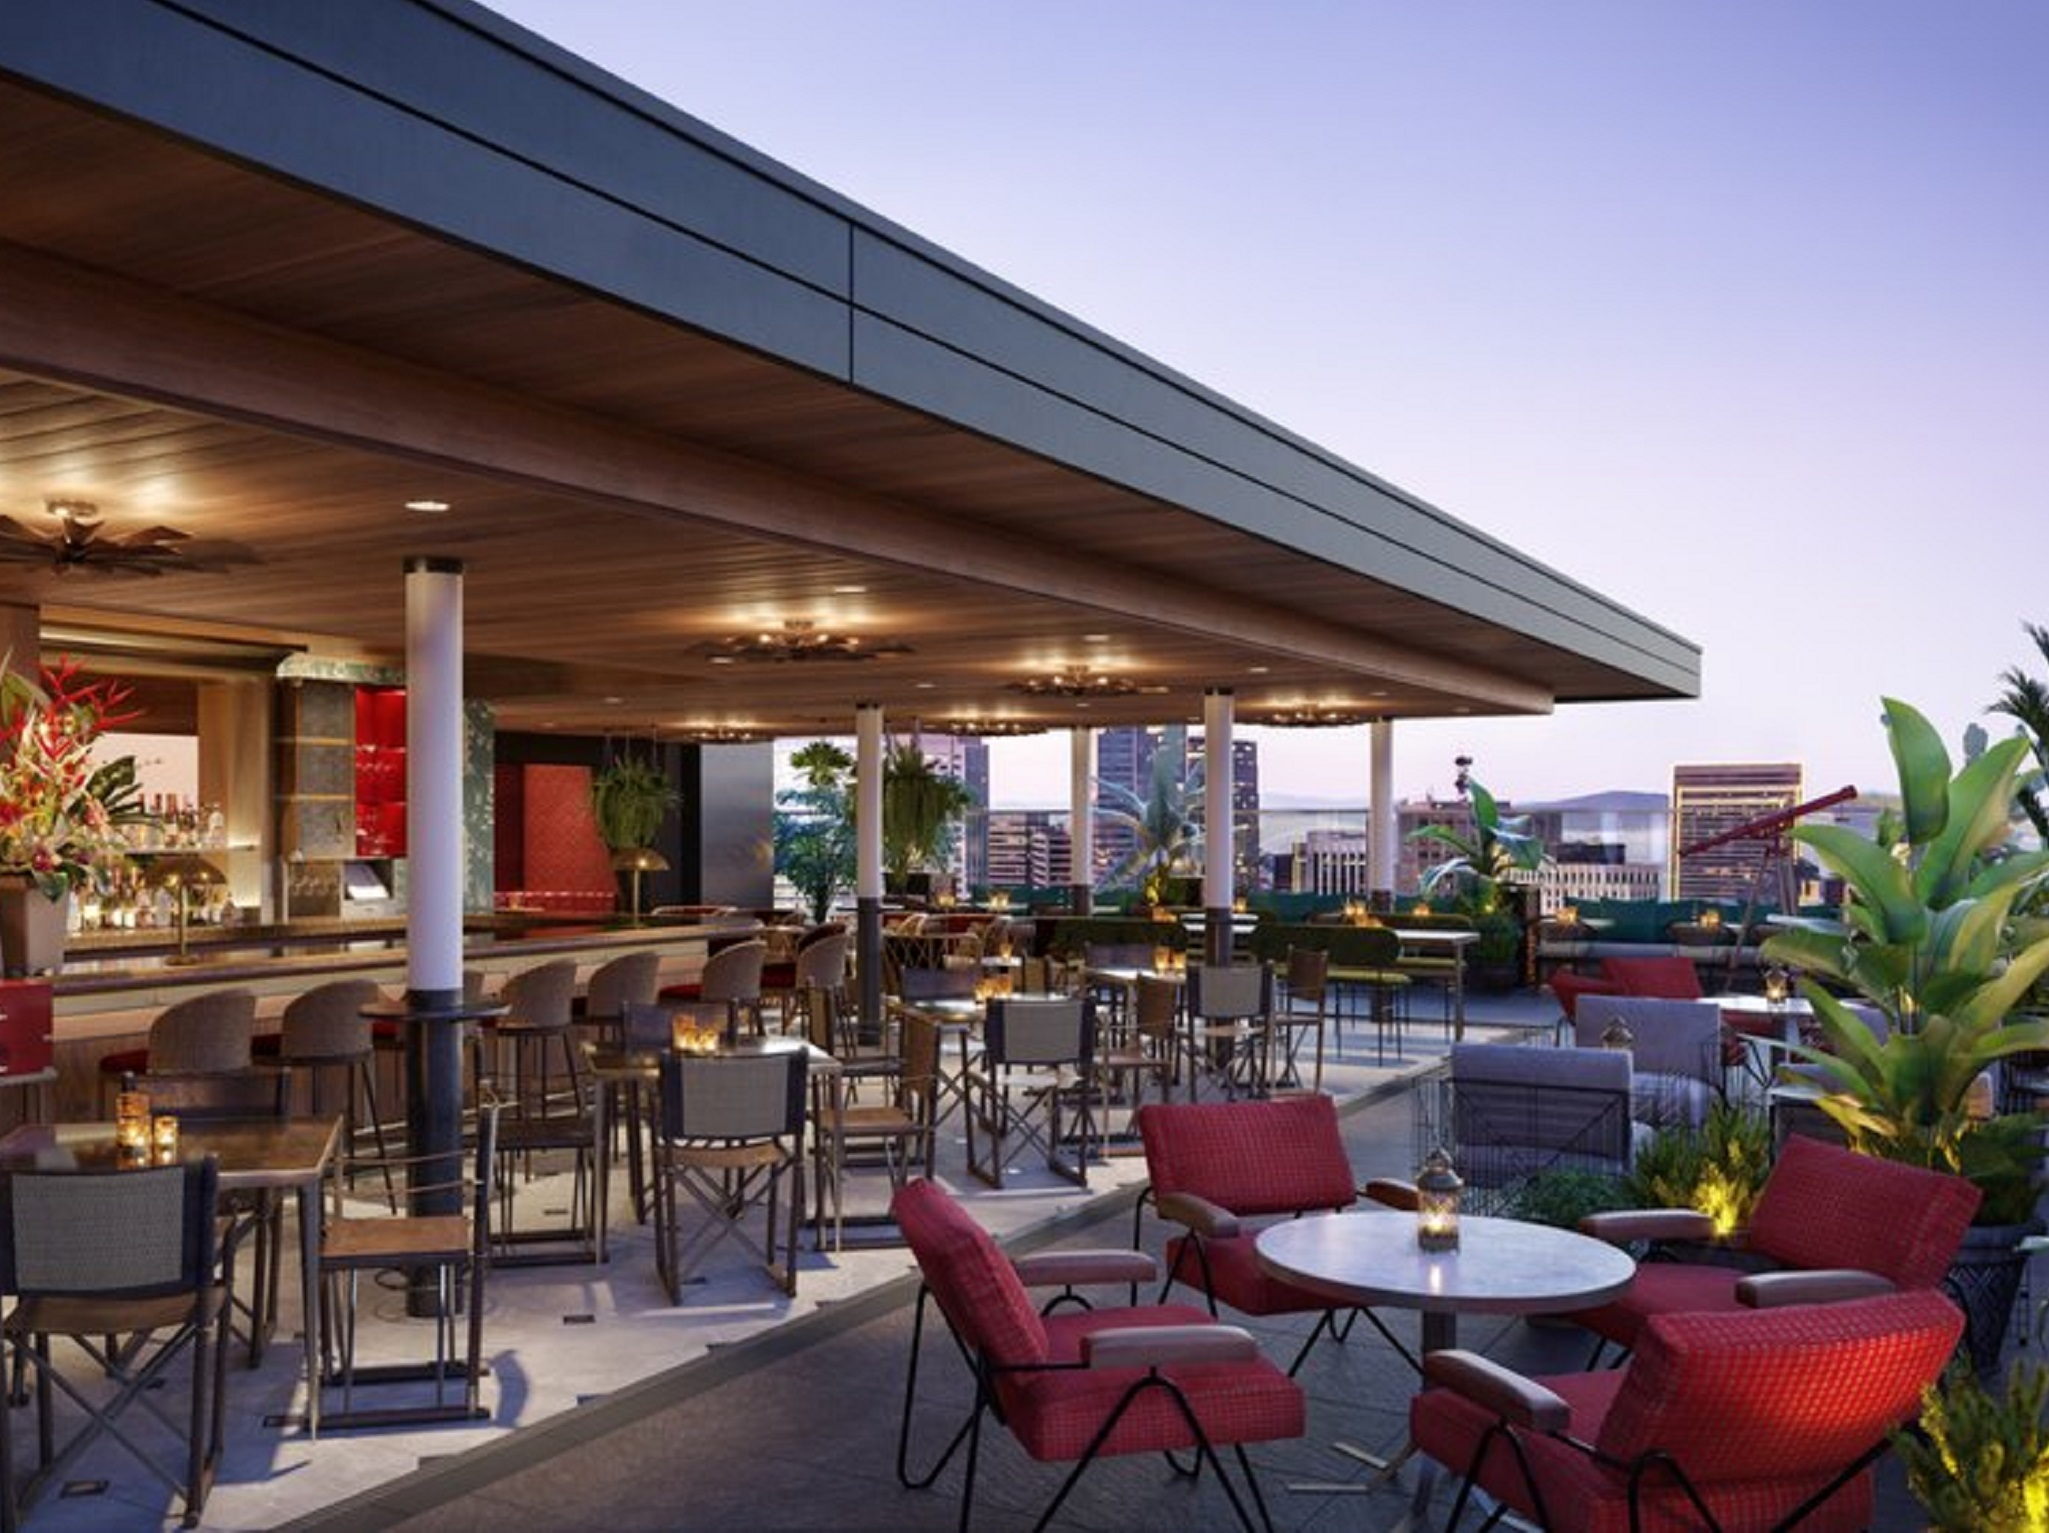 The 10 best rooftop bars in San Francisco